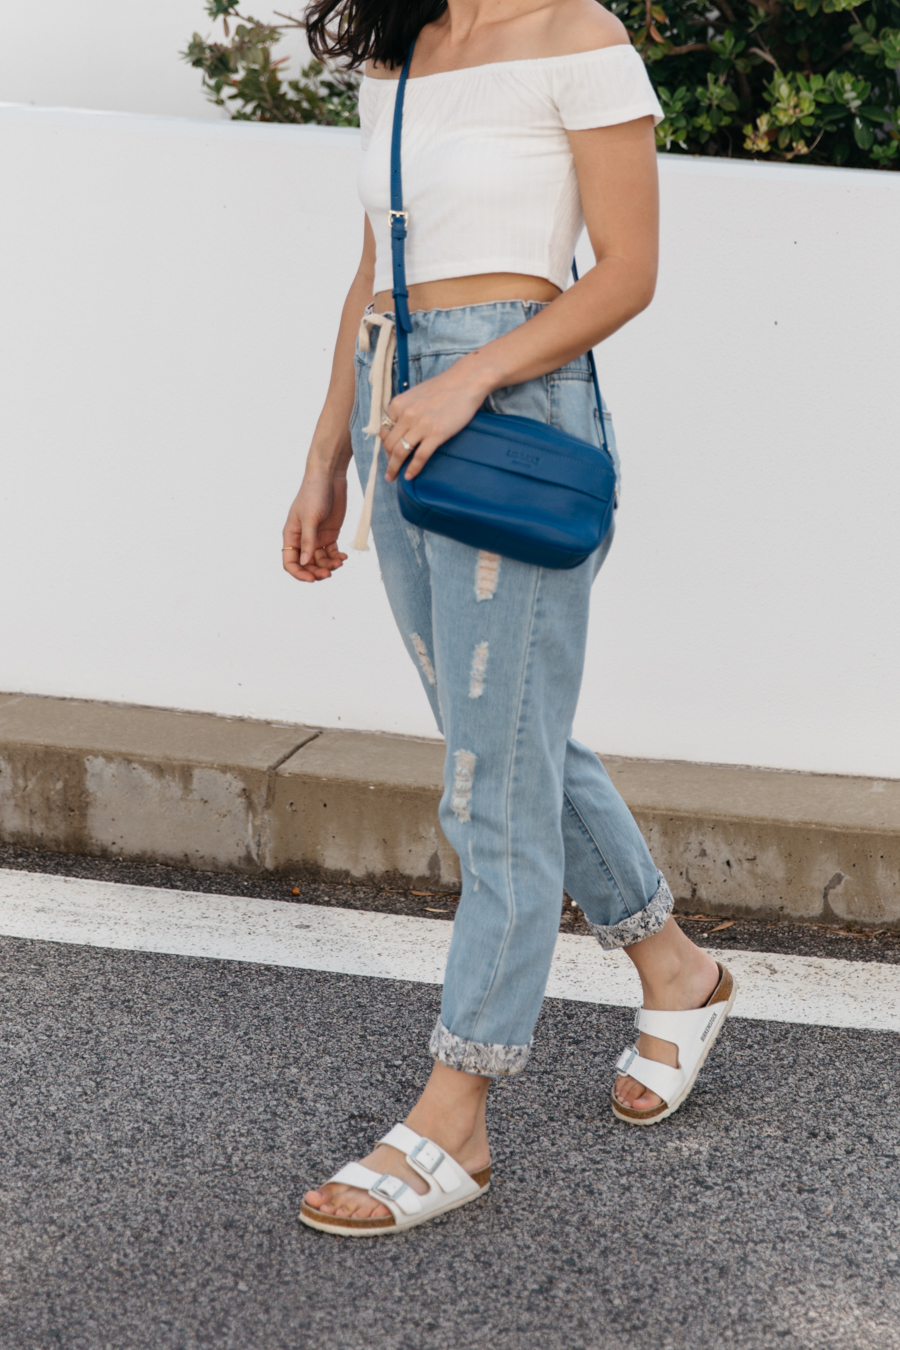 Small blue shoulder bag with boyfriend jeans.